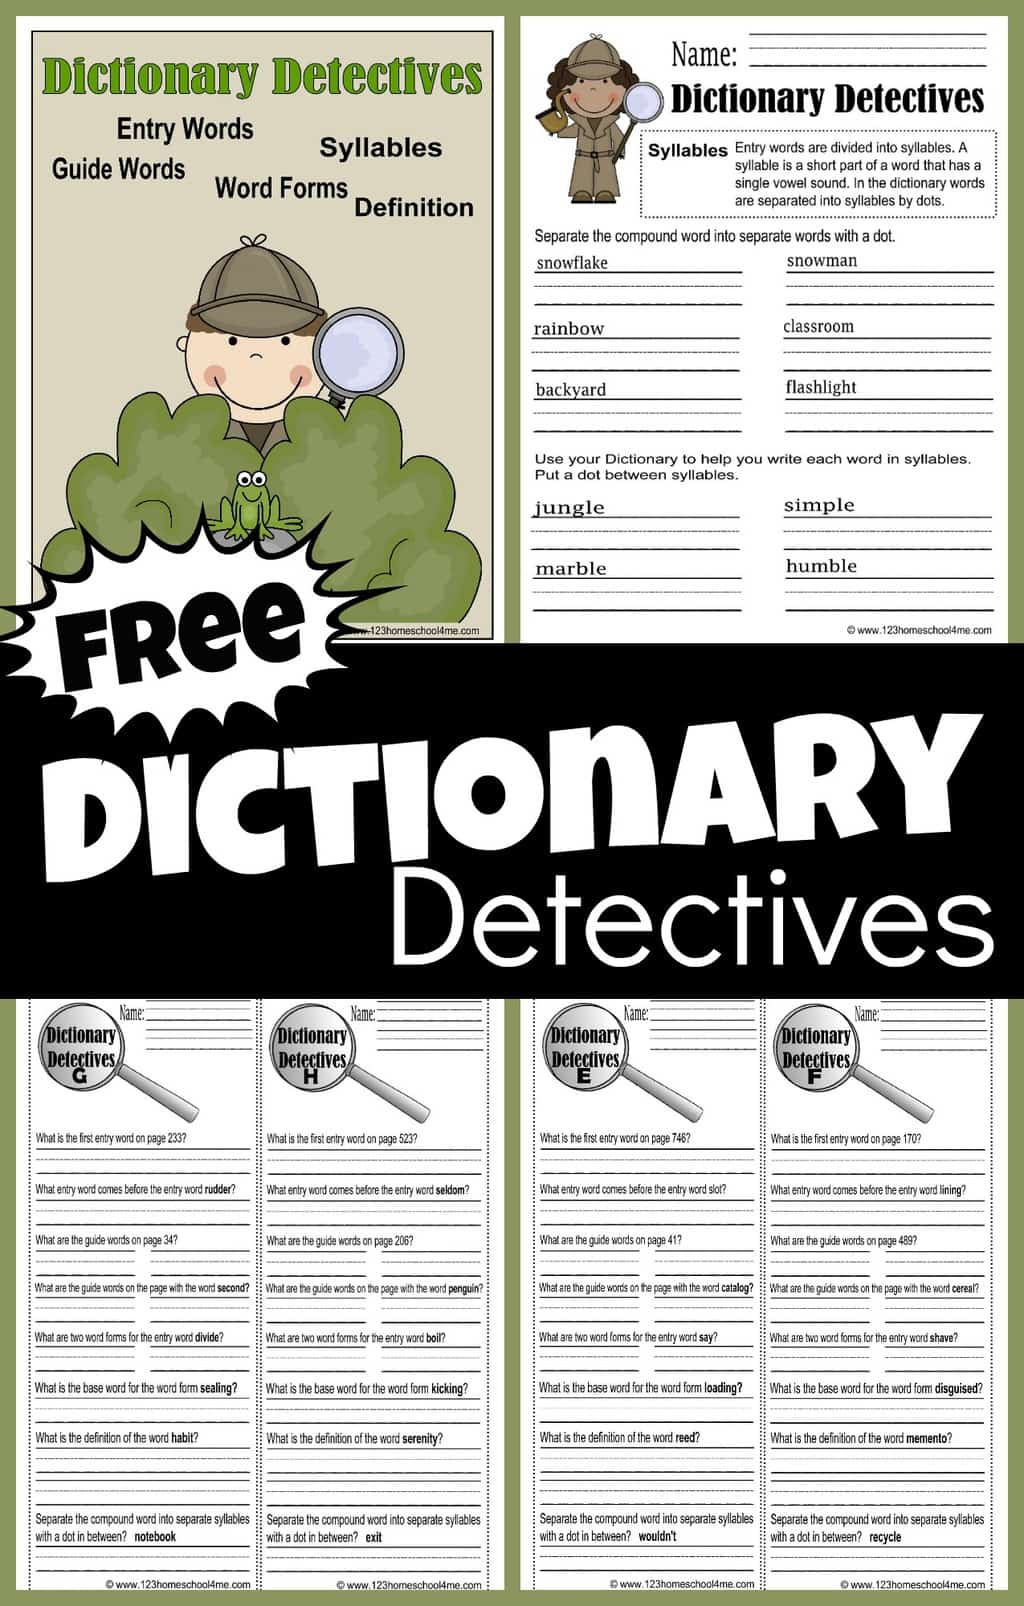 Dictionary Skill Worksheets 3rd Grade Free Dictionary Detective Worksheets for Kids